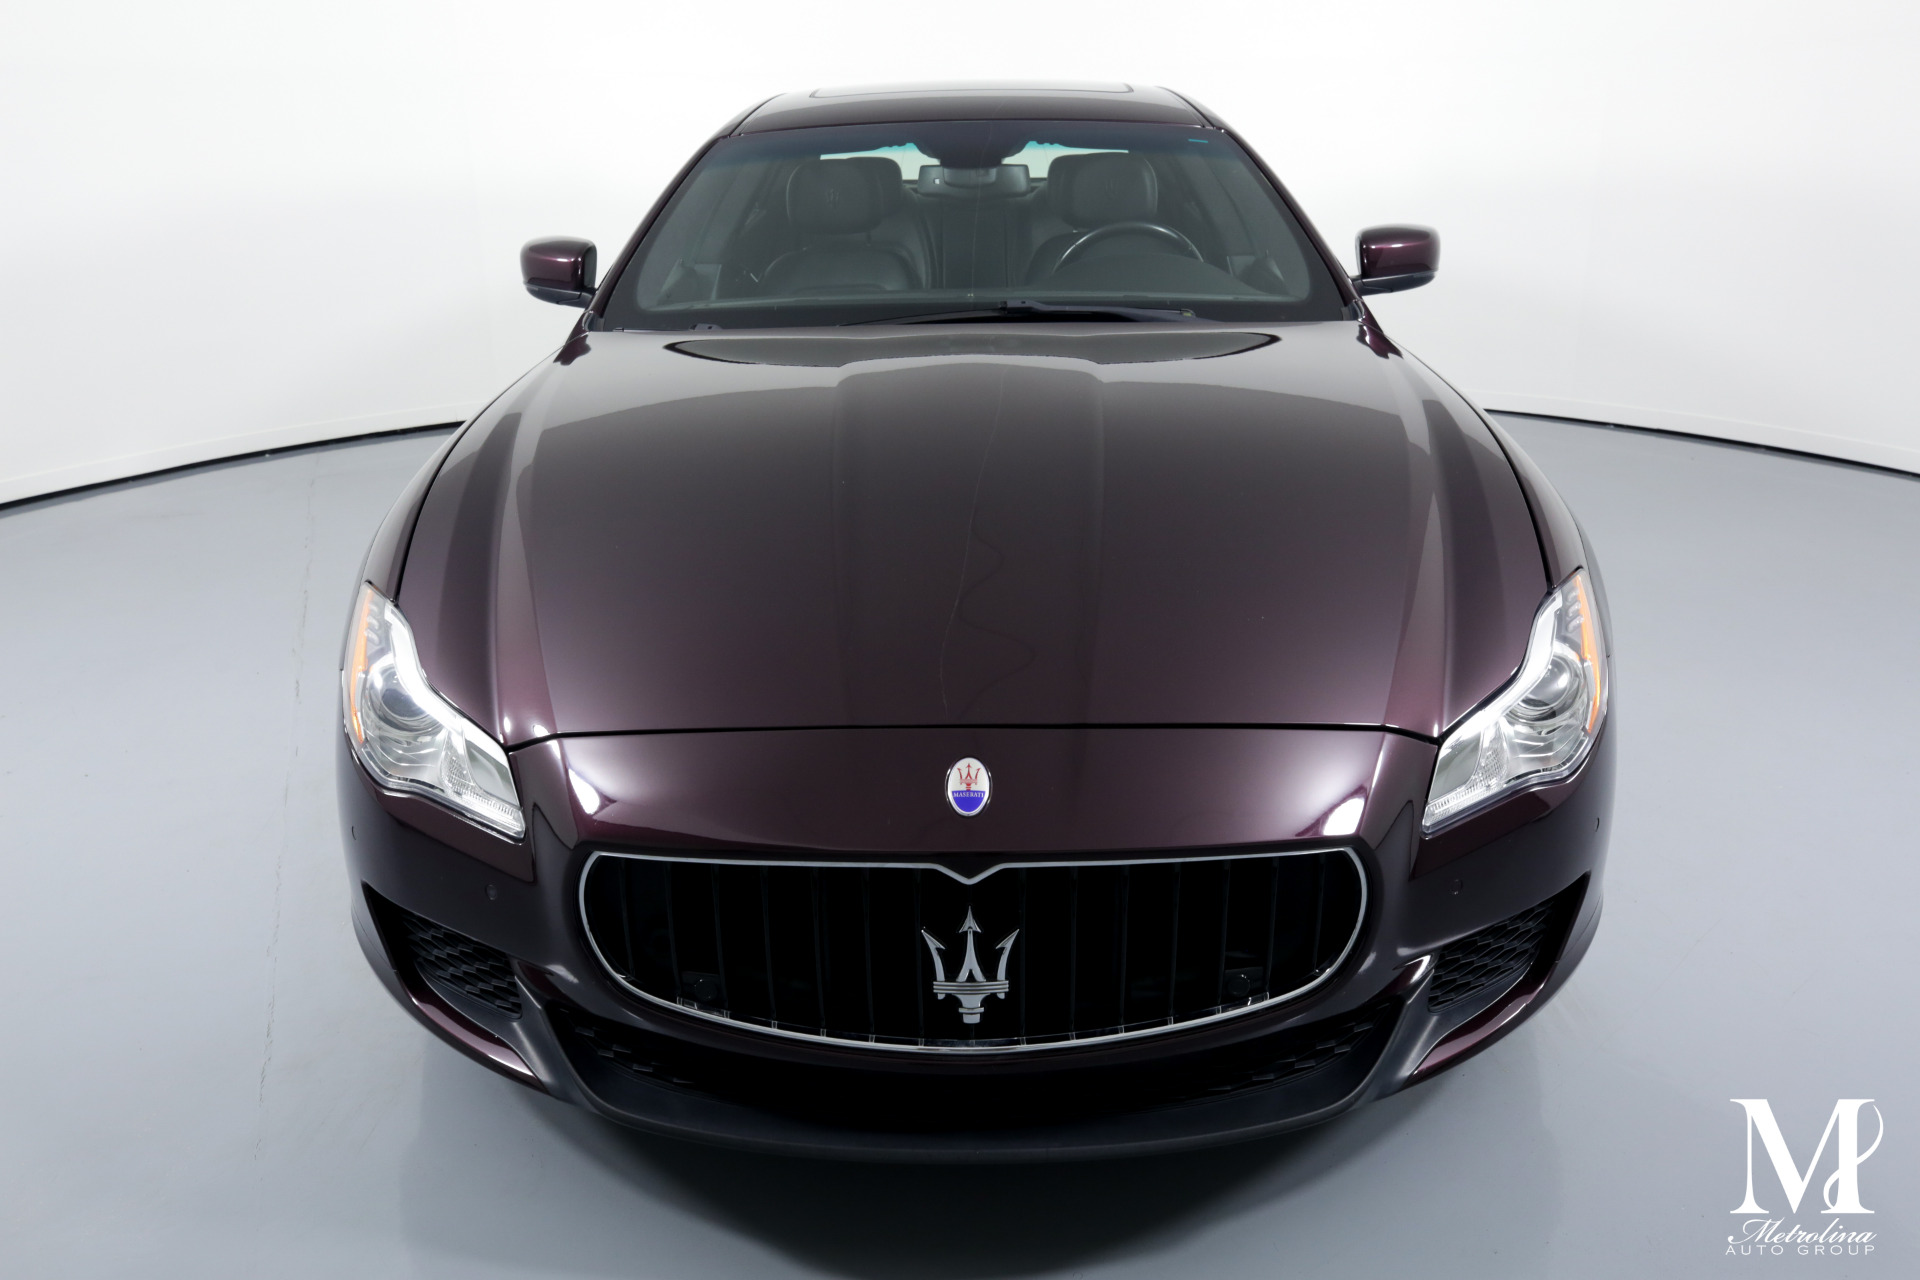 Used 2014 Maserati Quattroporte Sport GT S for sale $39,996 at Metrolina Auto Group in Charlotte NC 28217 - 3